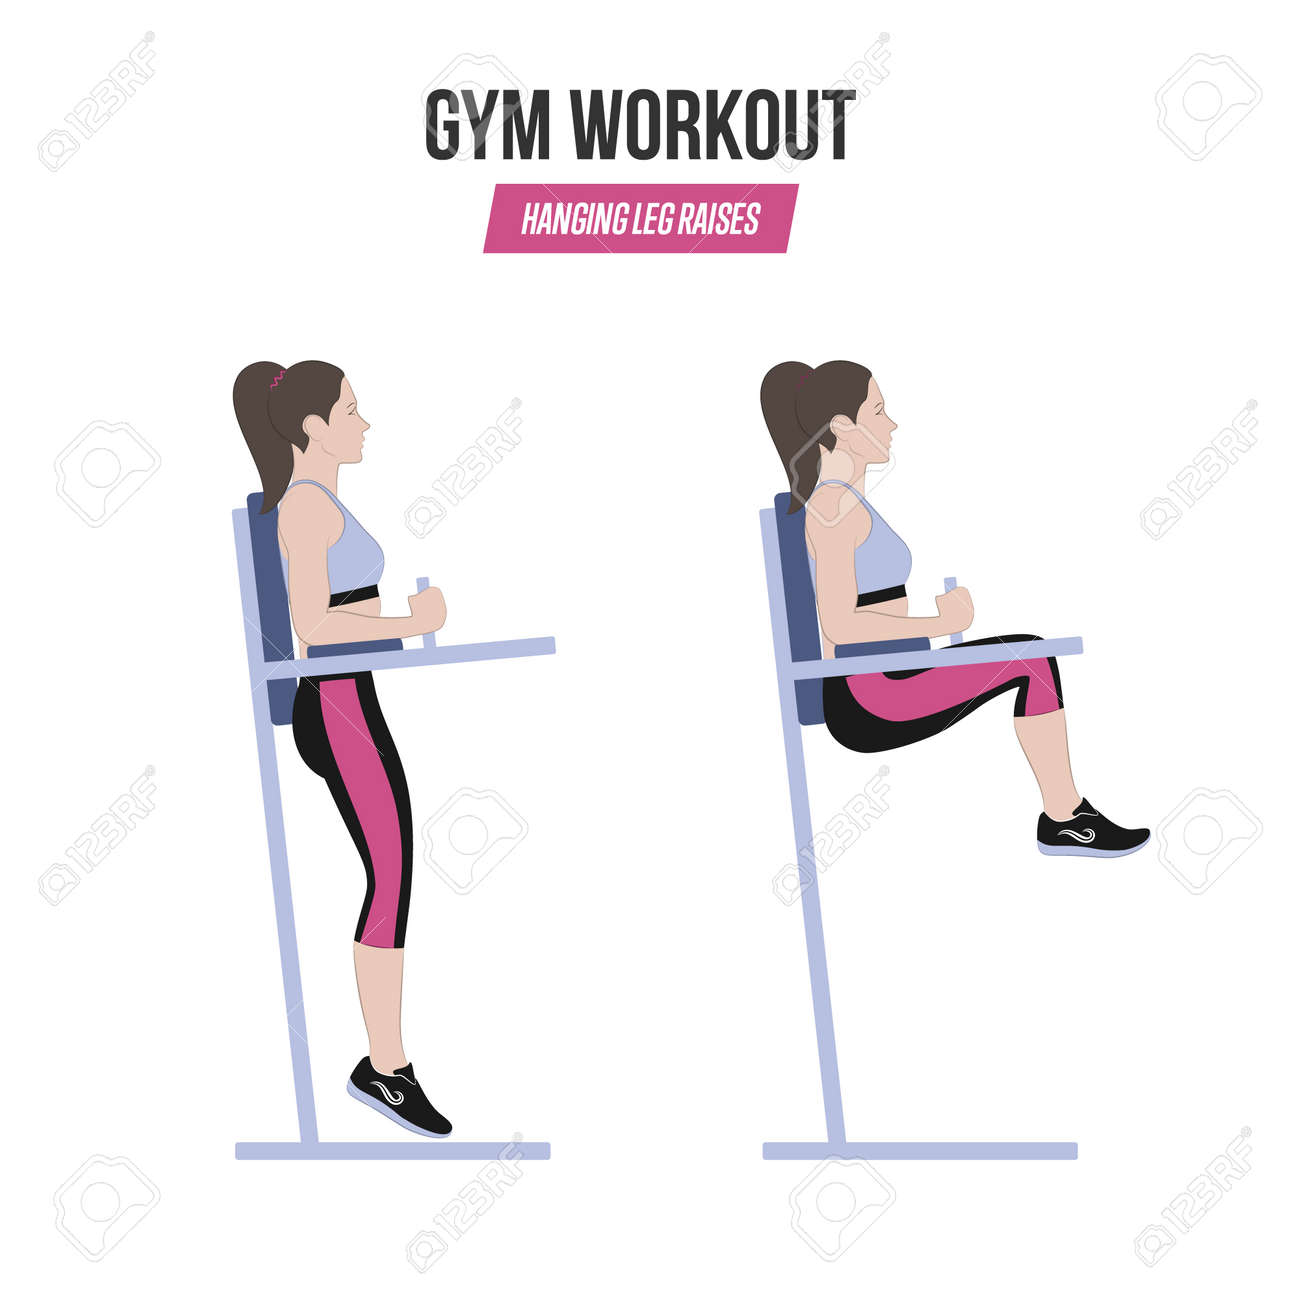 Chair Exercise Sport Exercises Gym Workout Hanging Leg Raises Captains Chair